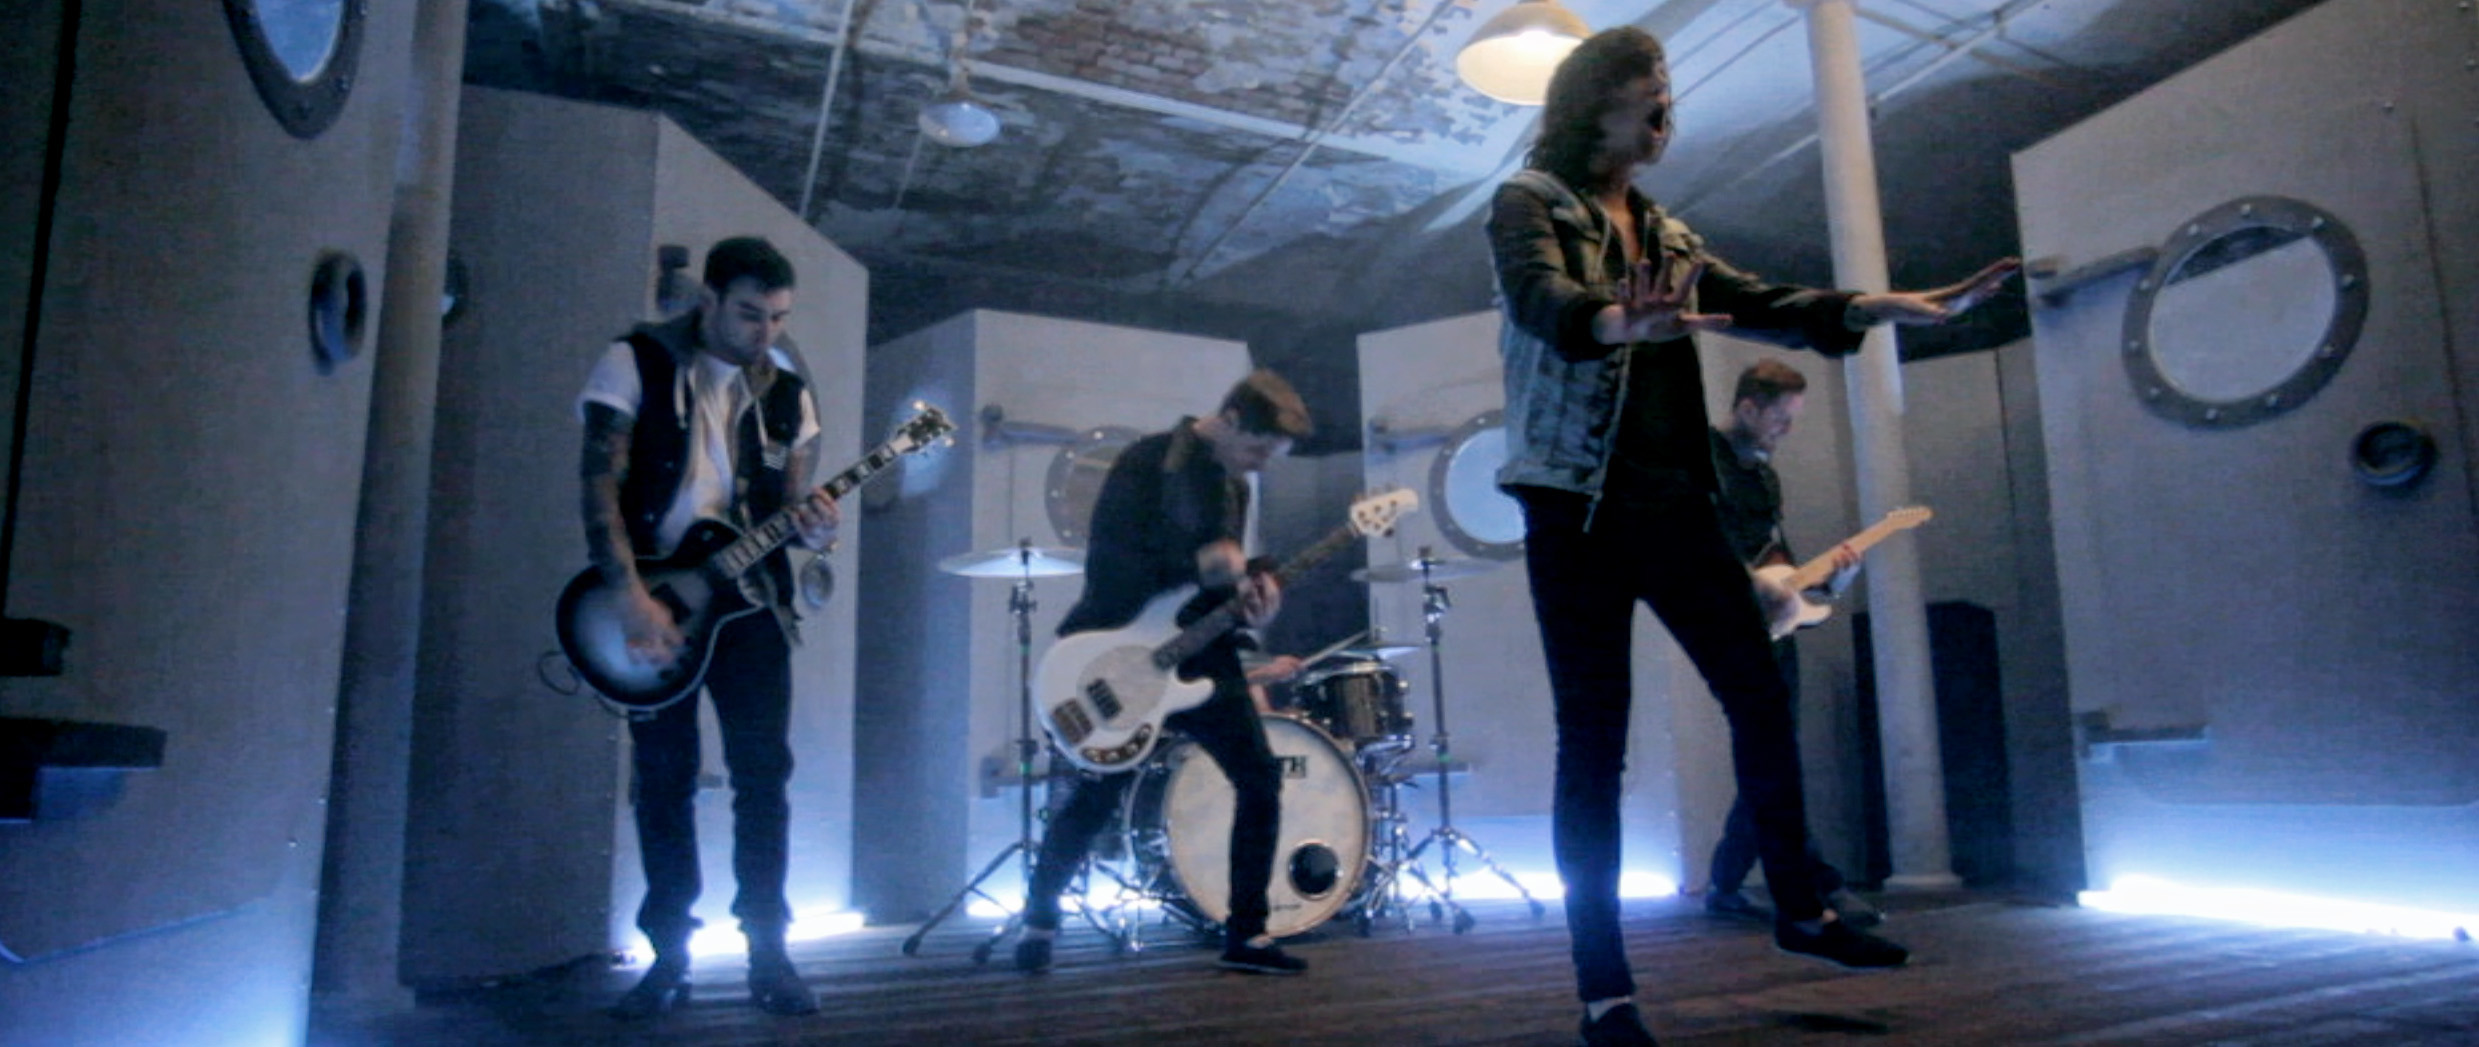 Sleeping With Sirens | Music Video